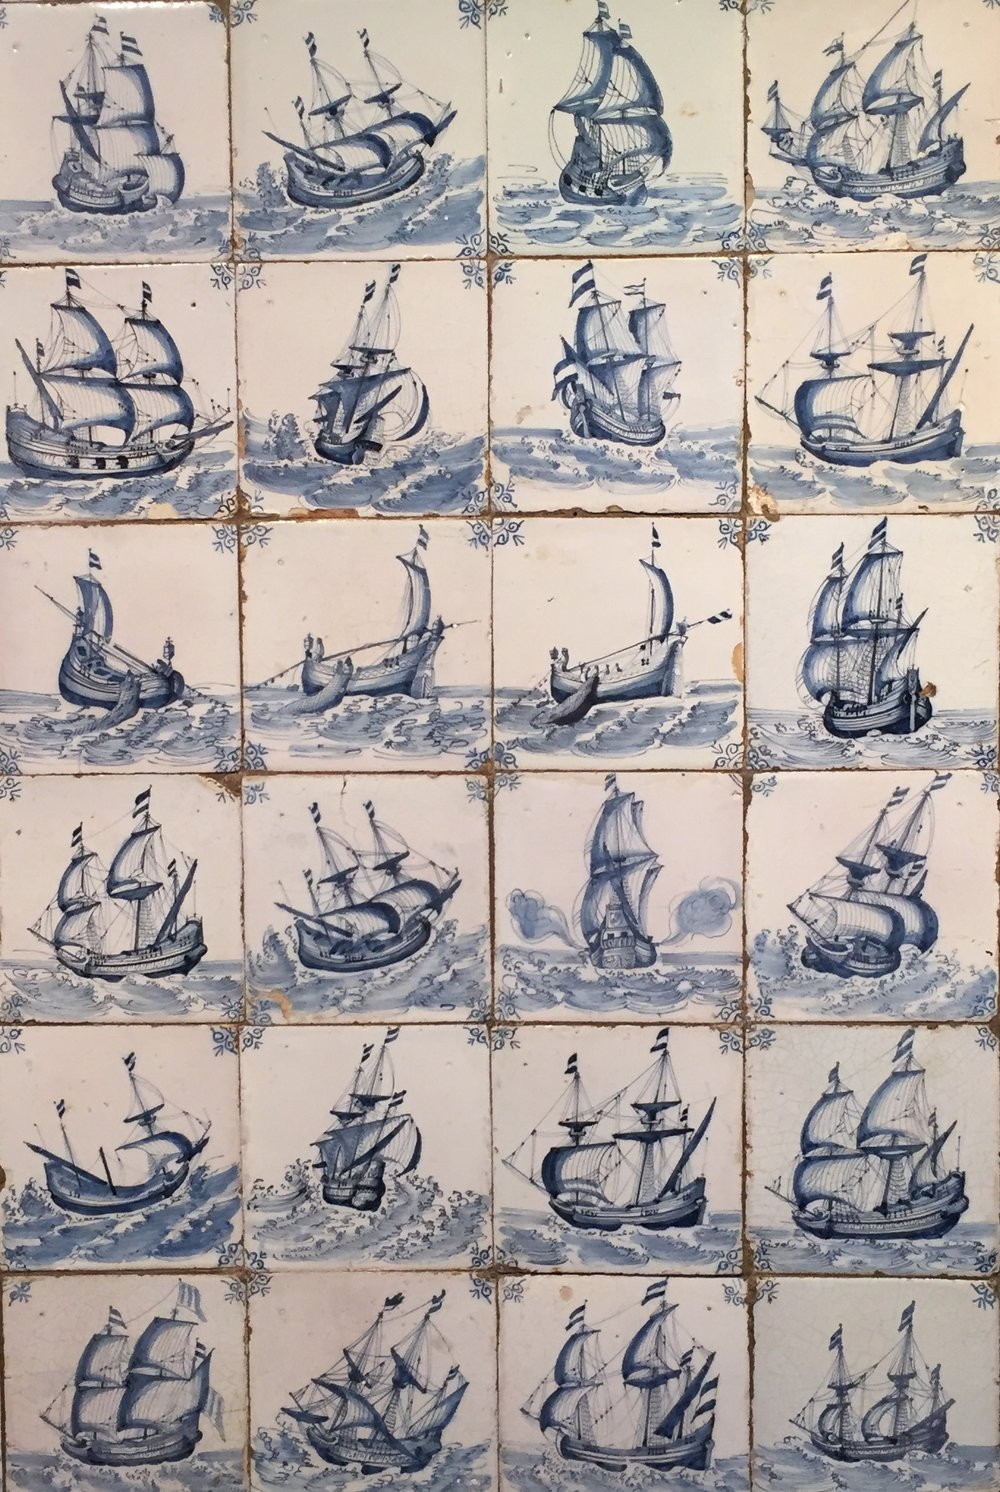 So many beautiful tiles and of course the Dutch ships are magnificent!